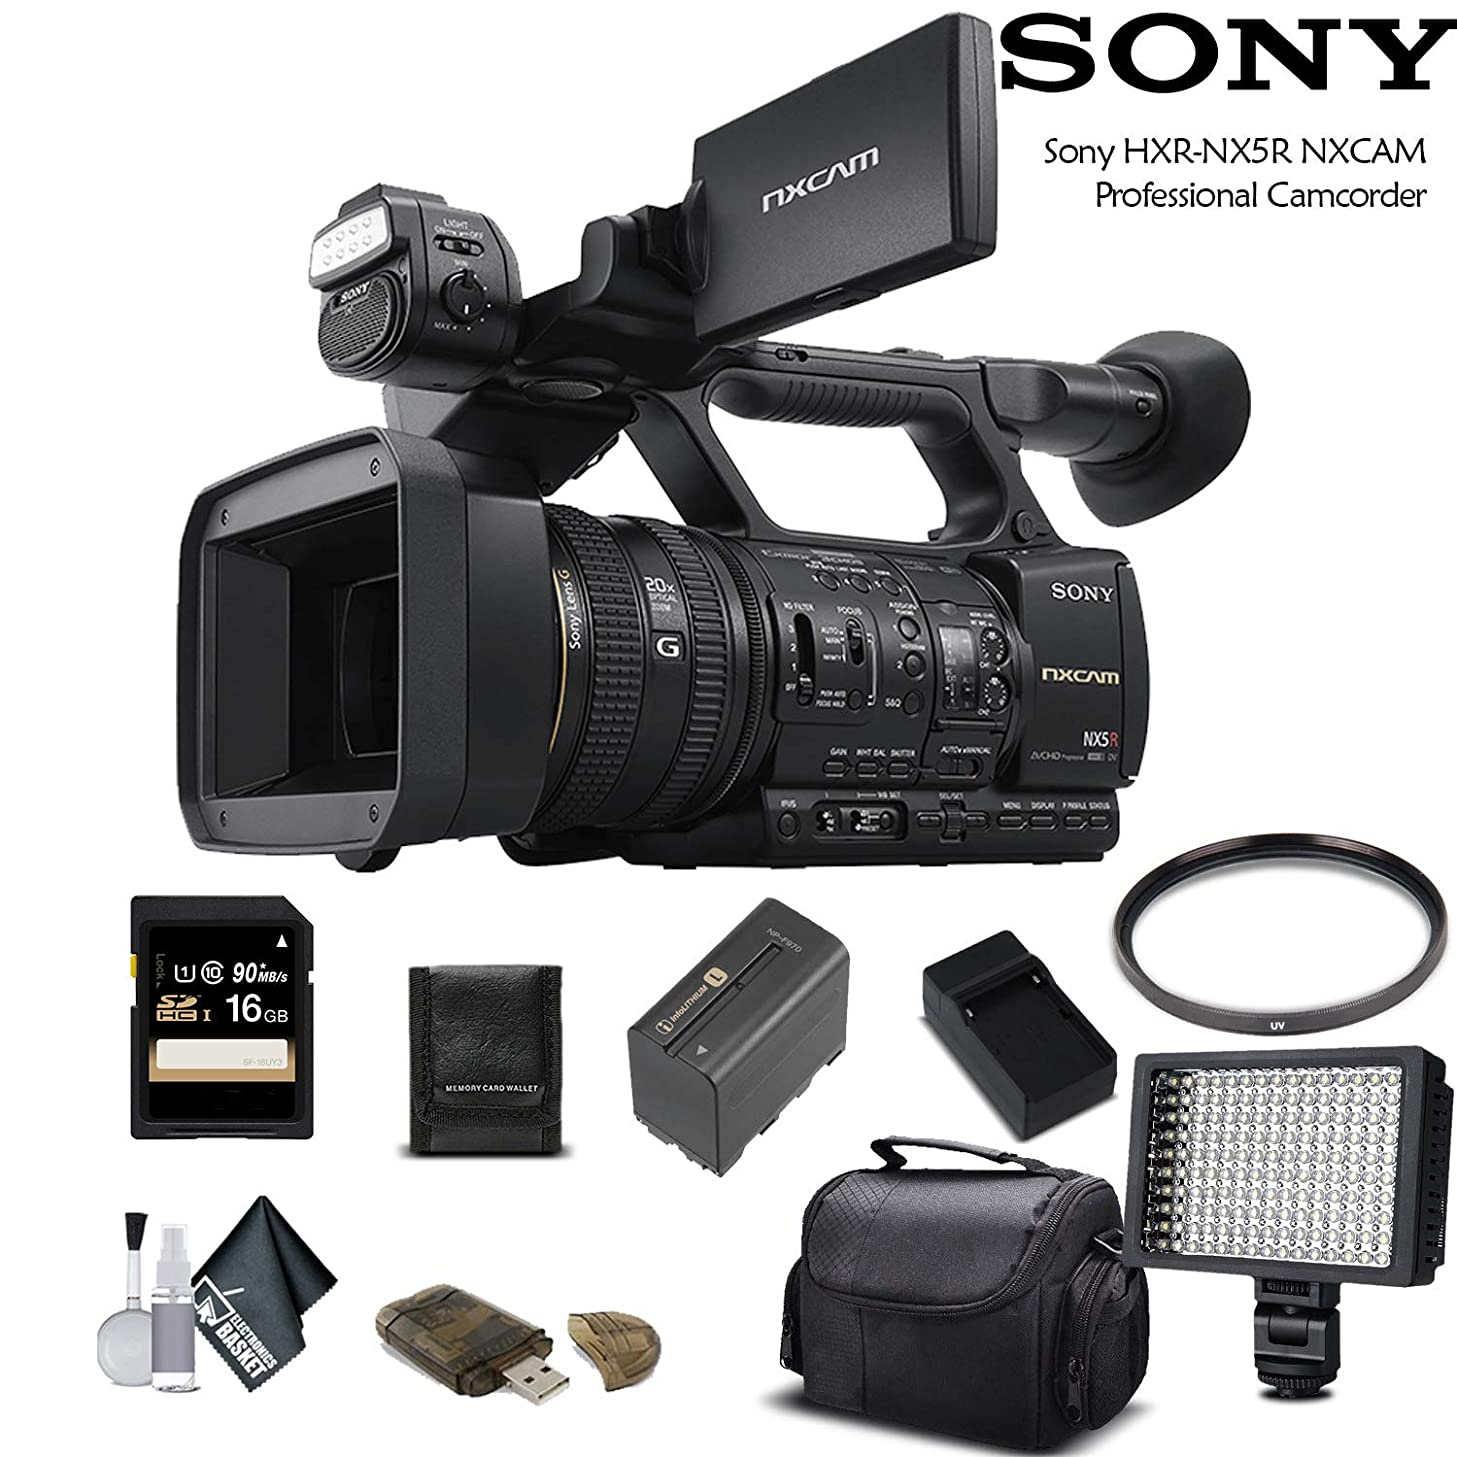 Sony HXR-NX5R NXCAM Professional Camcorder (HXR-NX5R) with 16GB Memory Card, Extra Battery and Charger, LED Light, Case and More. - Starter Bundle